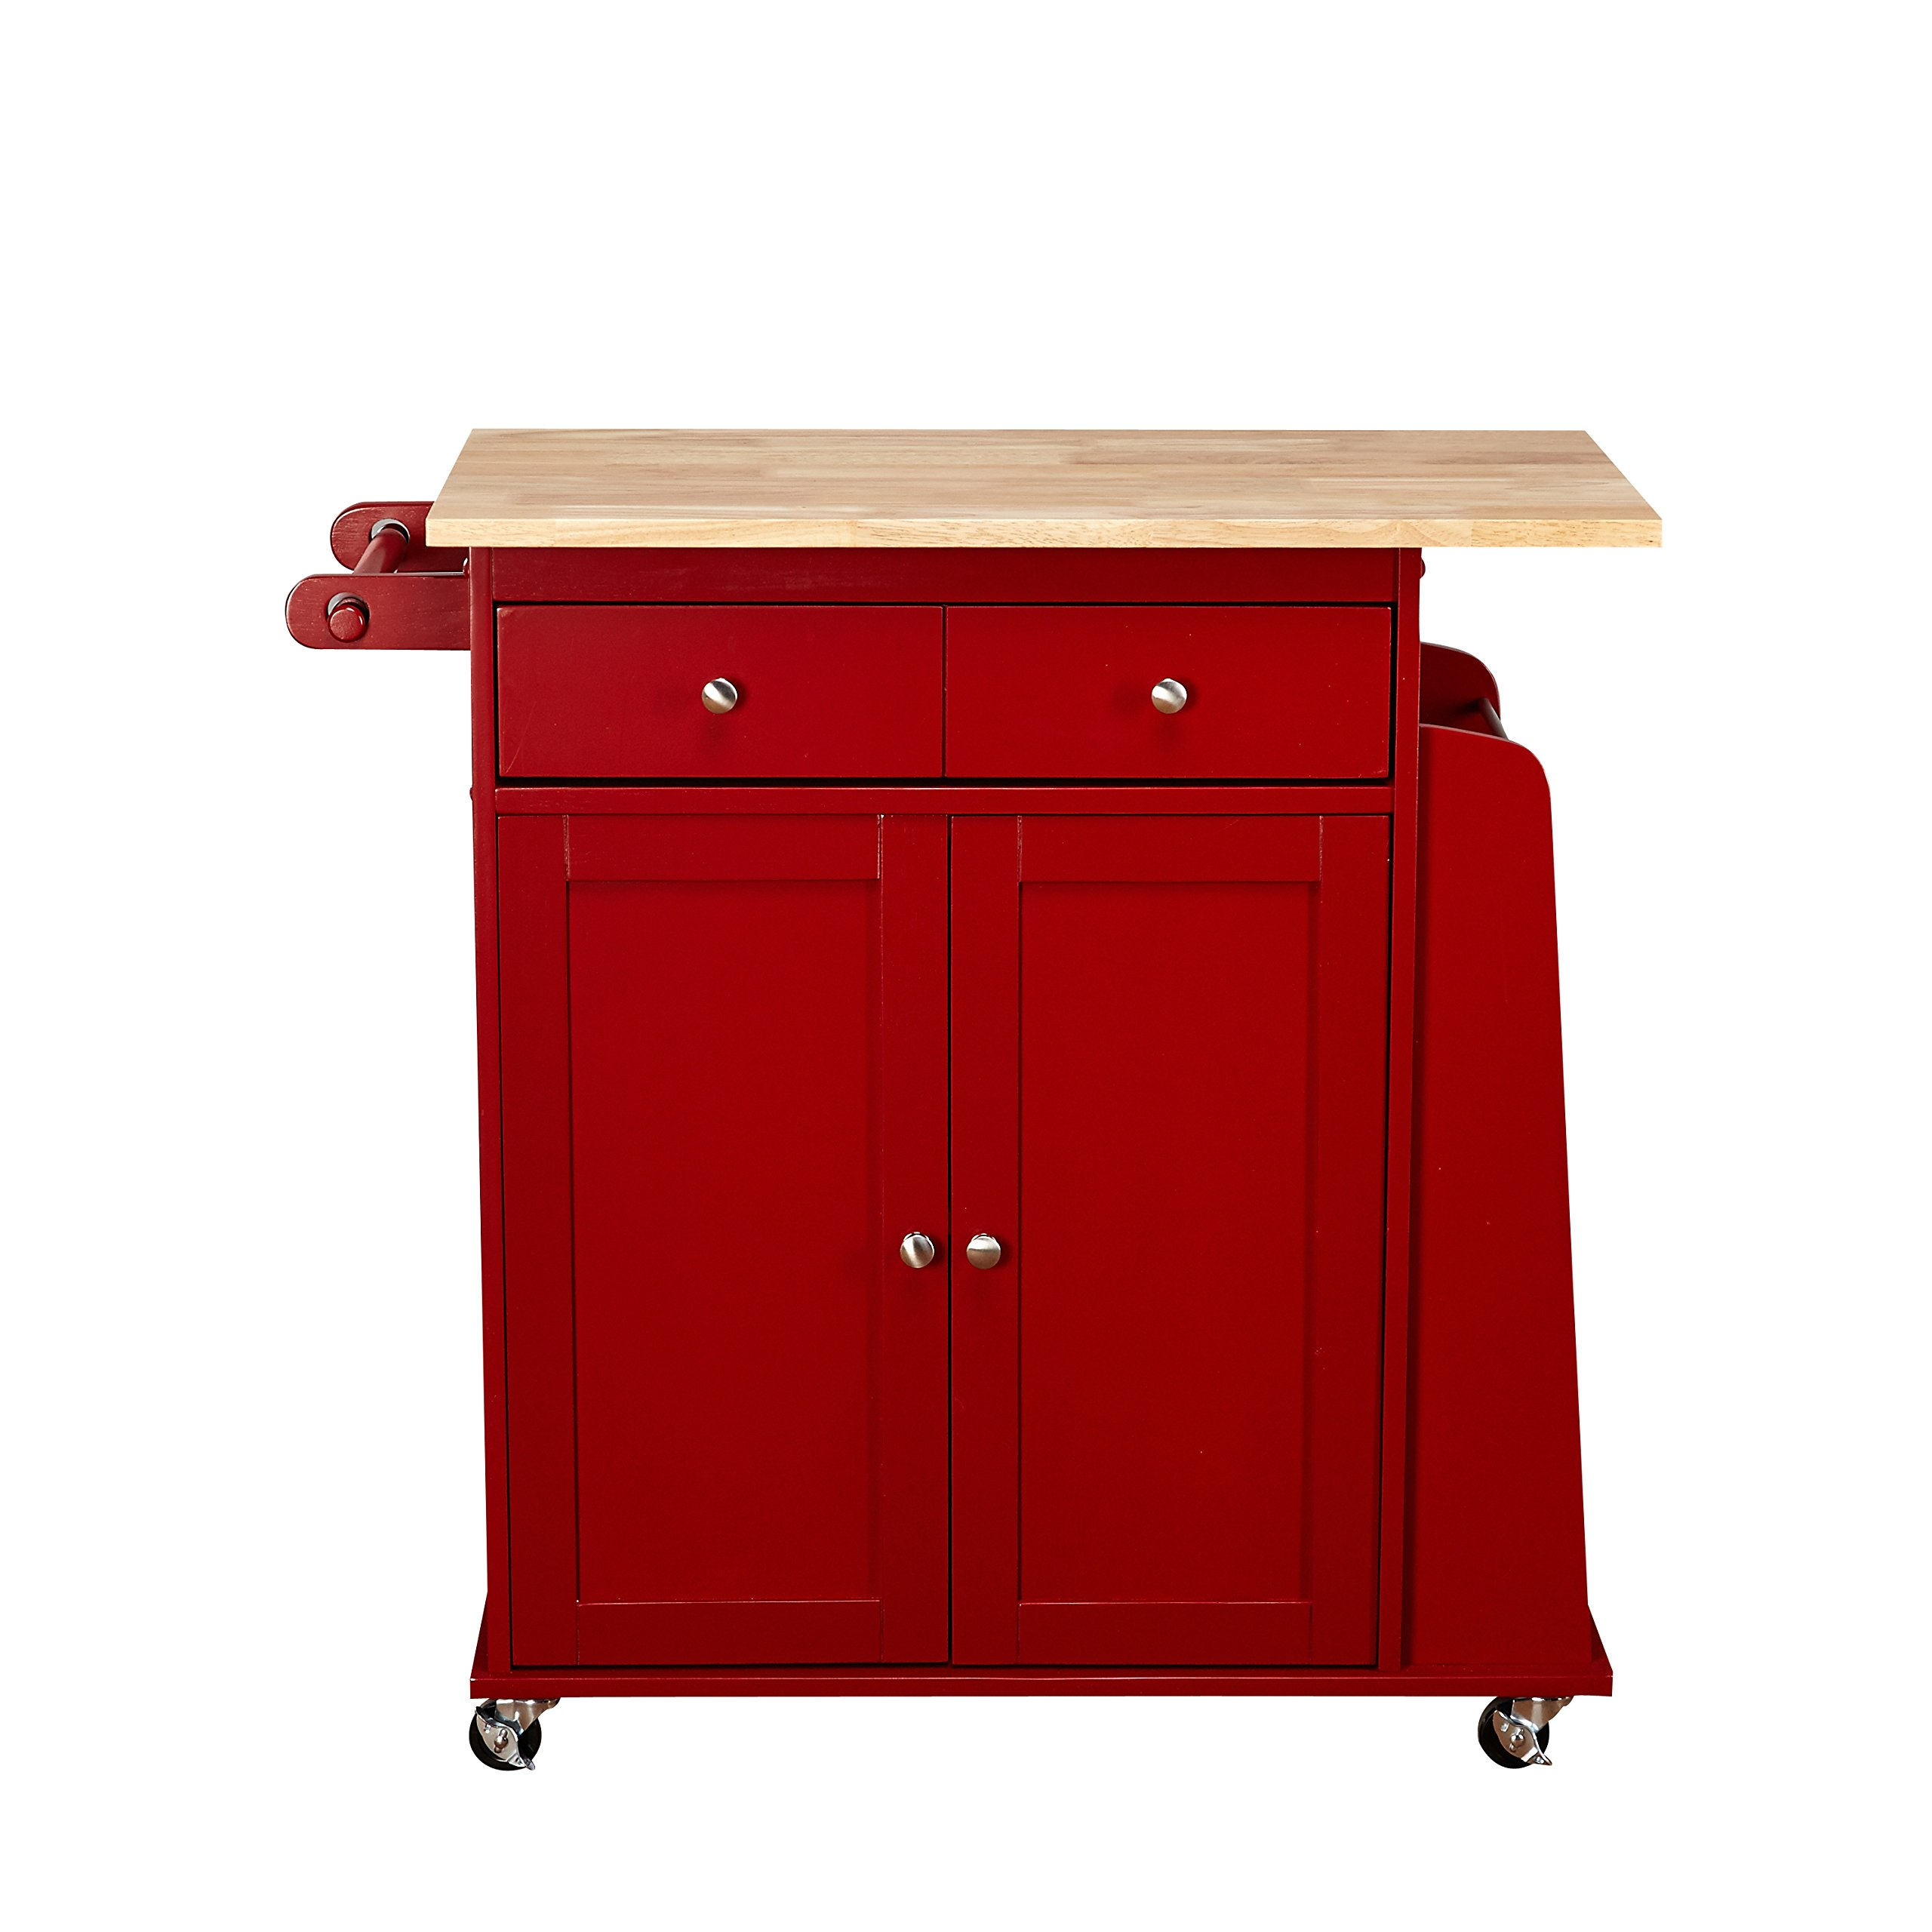 Target Marketing Systems Sonoma Collection Two-Toned Rolling Kitchen Cart with Drawer, Cabinet, and Spice Rack, Red/Natural by Target Marketing Systems